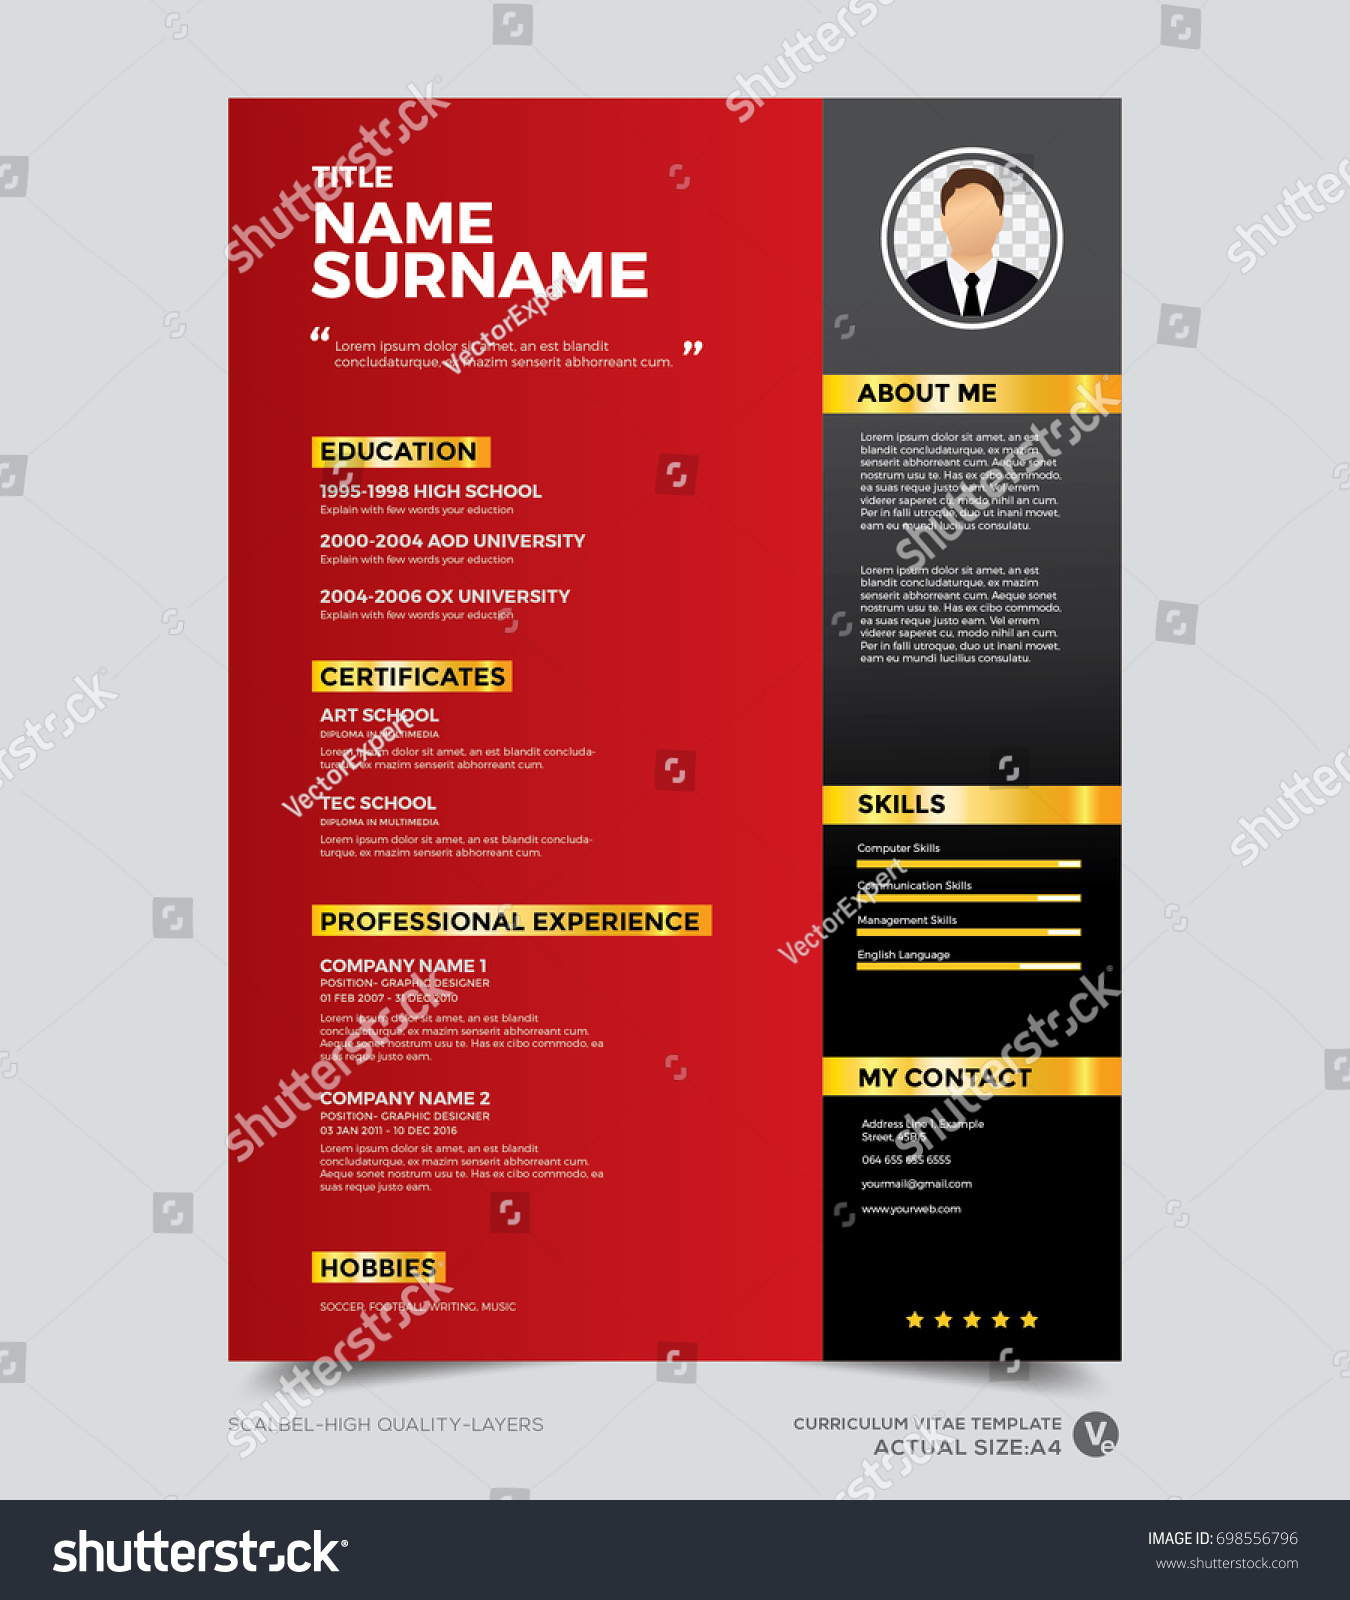 Clean Modern Design Template Resume CV Vector de stock (libre de ...